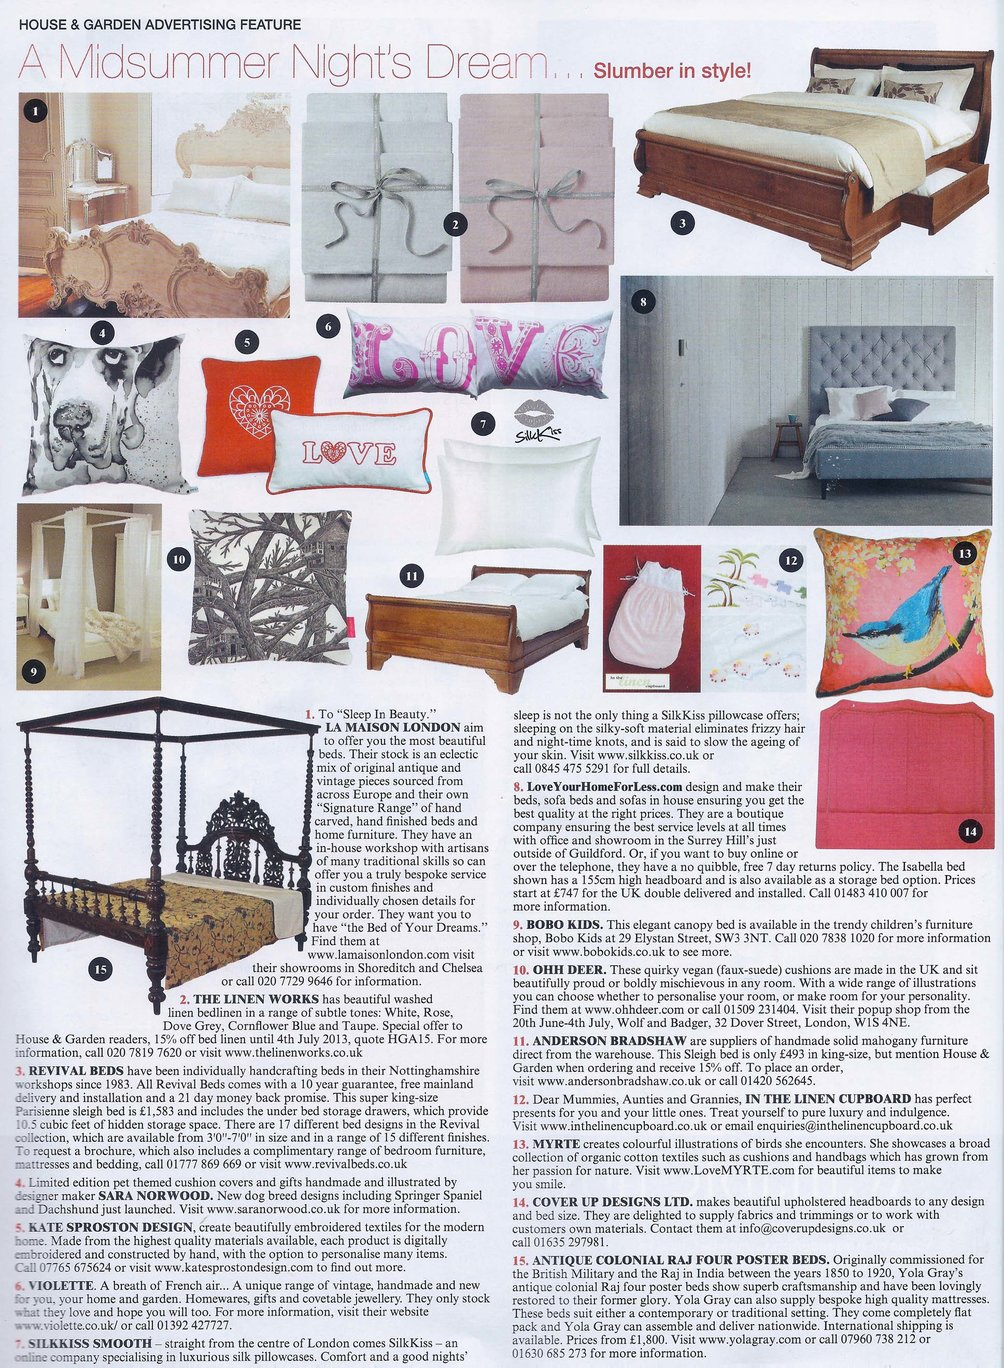 Isabella Upholstered bed featuring in House & Home's 'A Midsummer Night's Dream' Article